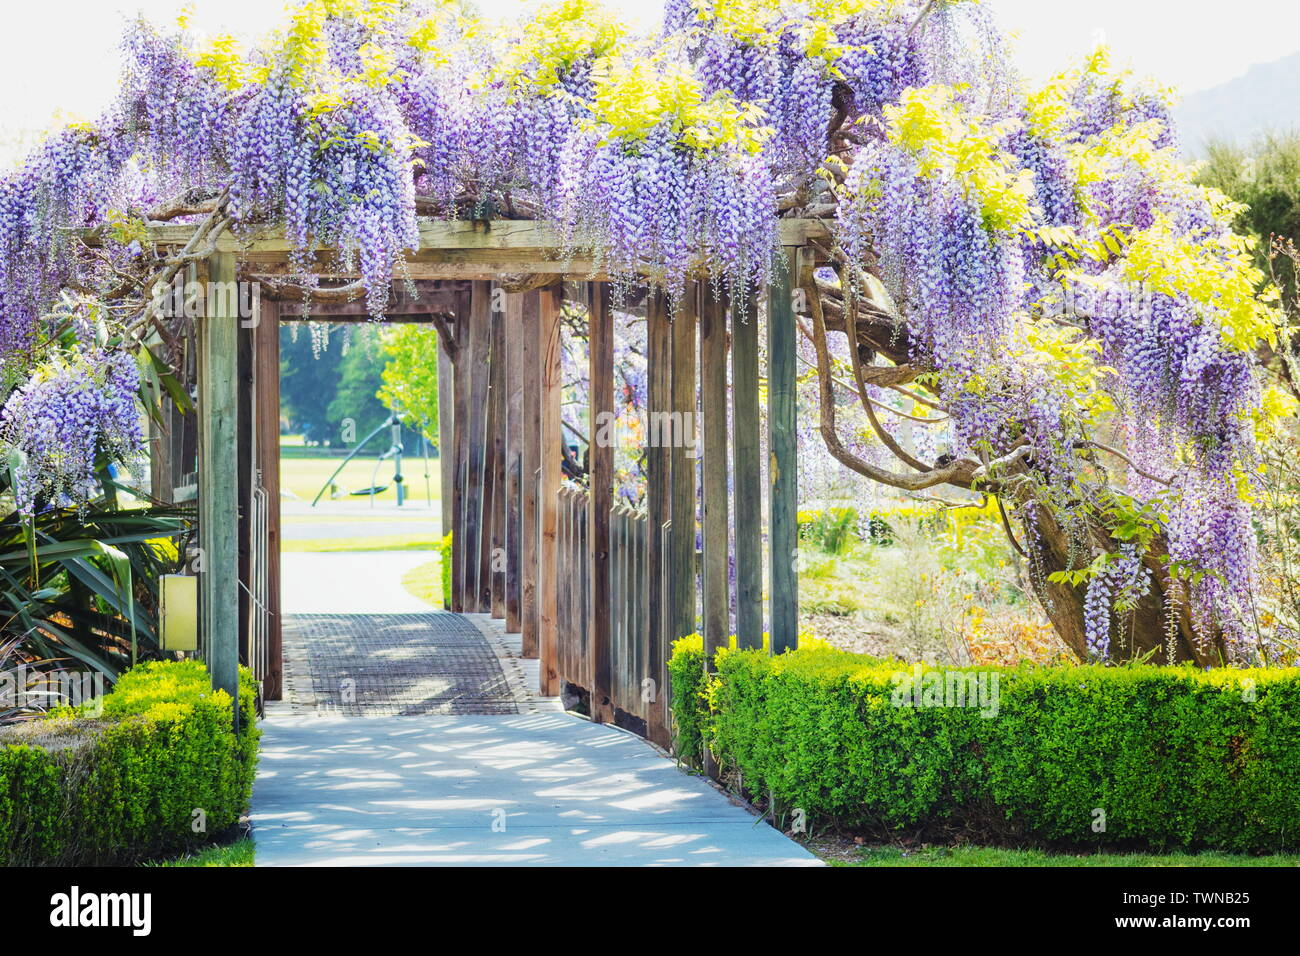 Image of Wisteria Flowers hanging on a garden bridge support Stock Photo